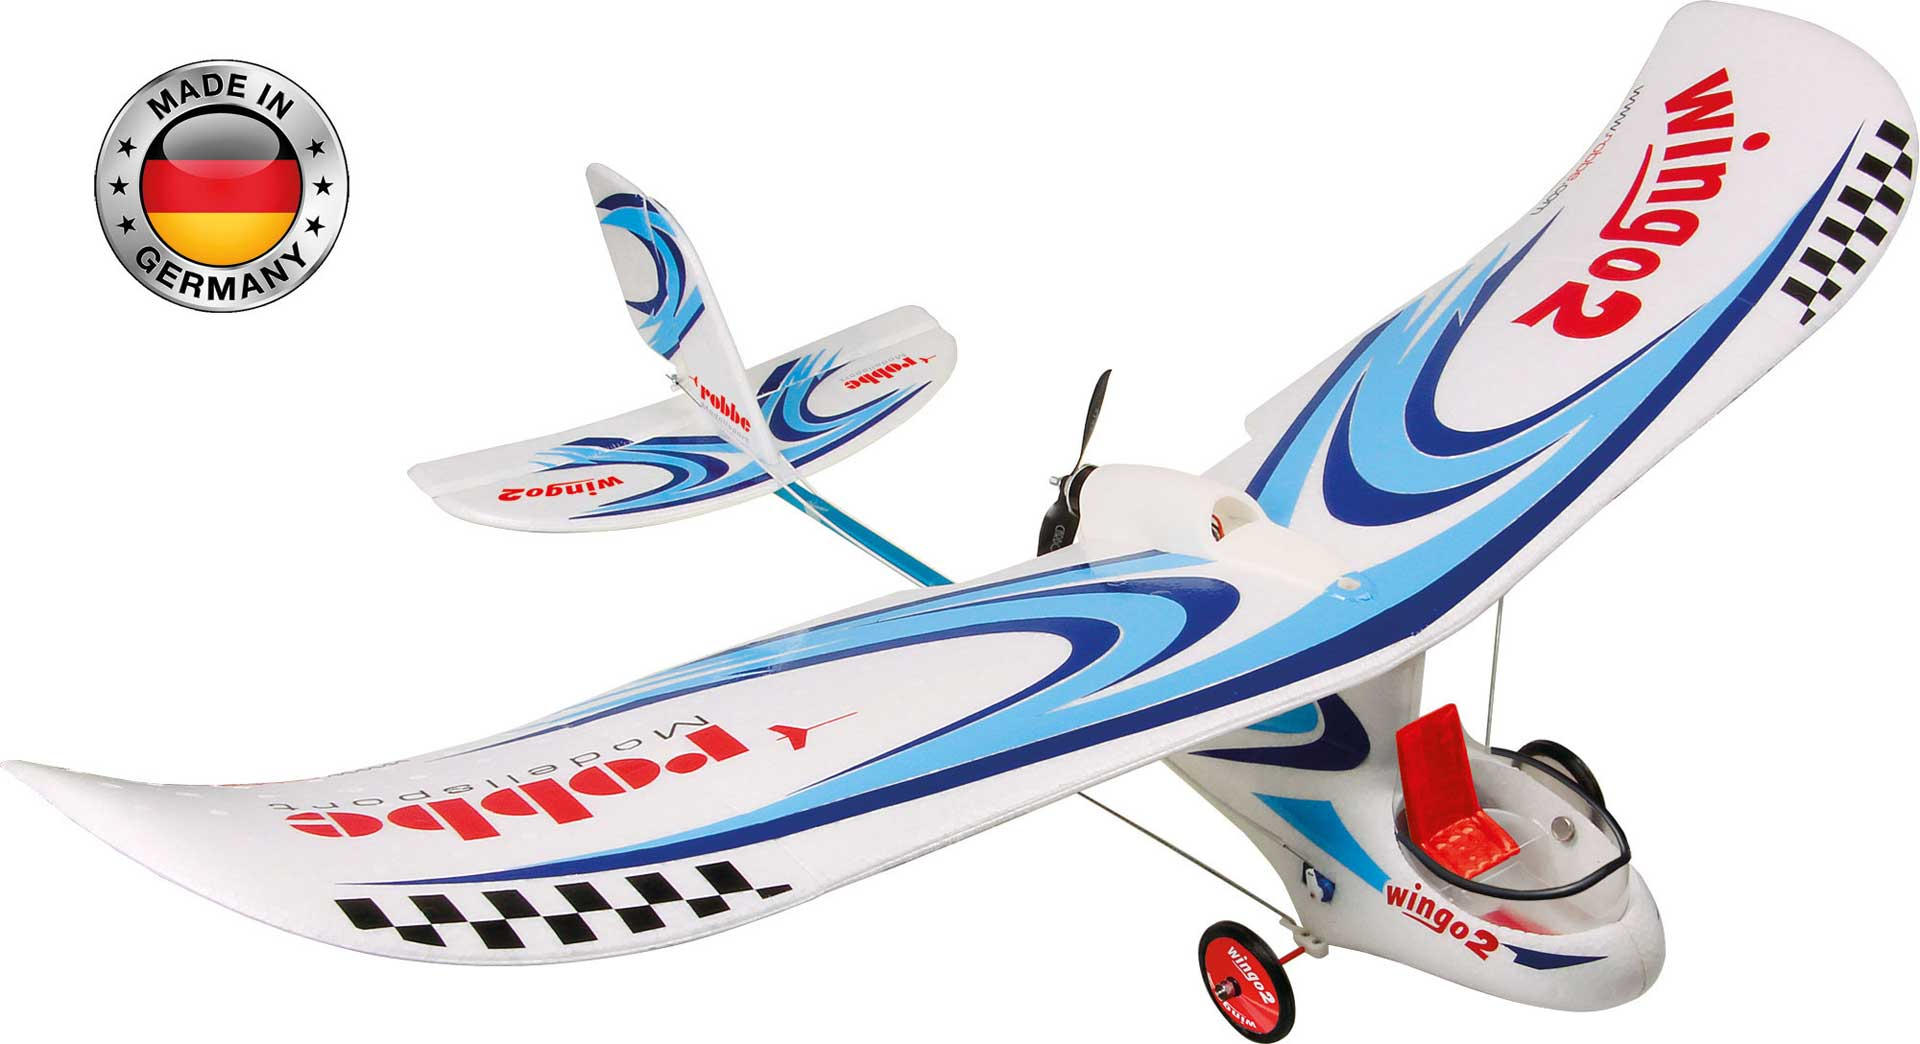 "ROBBE WINGO 2 PNP ""you can fly"" pre-assembled with brushless motor, controller & servo"